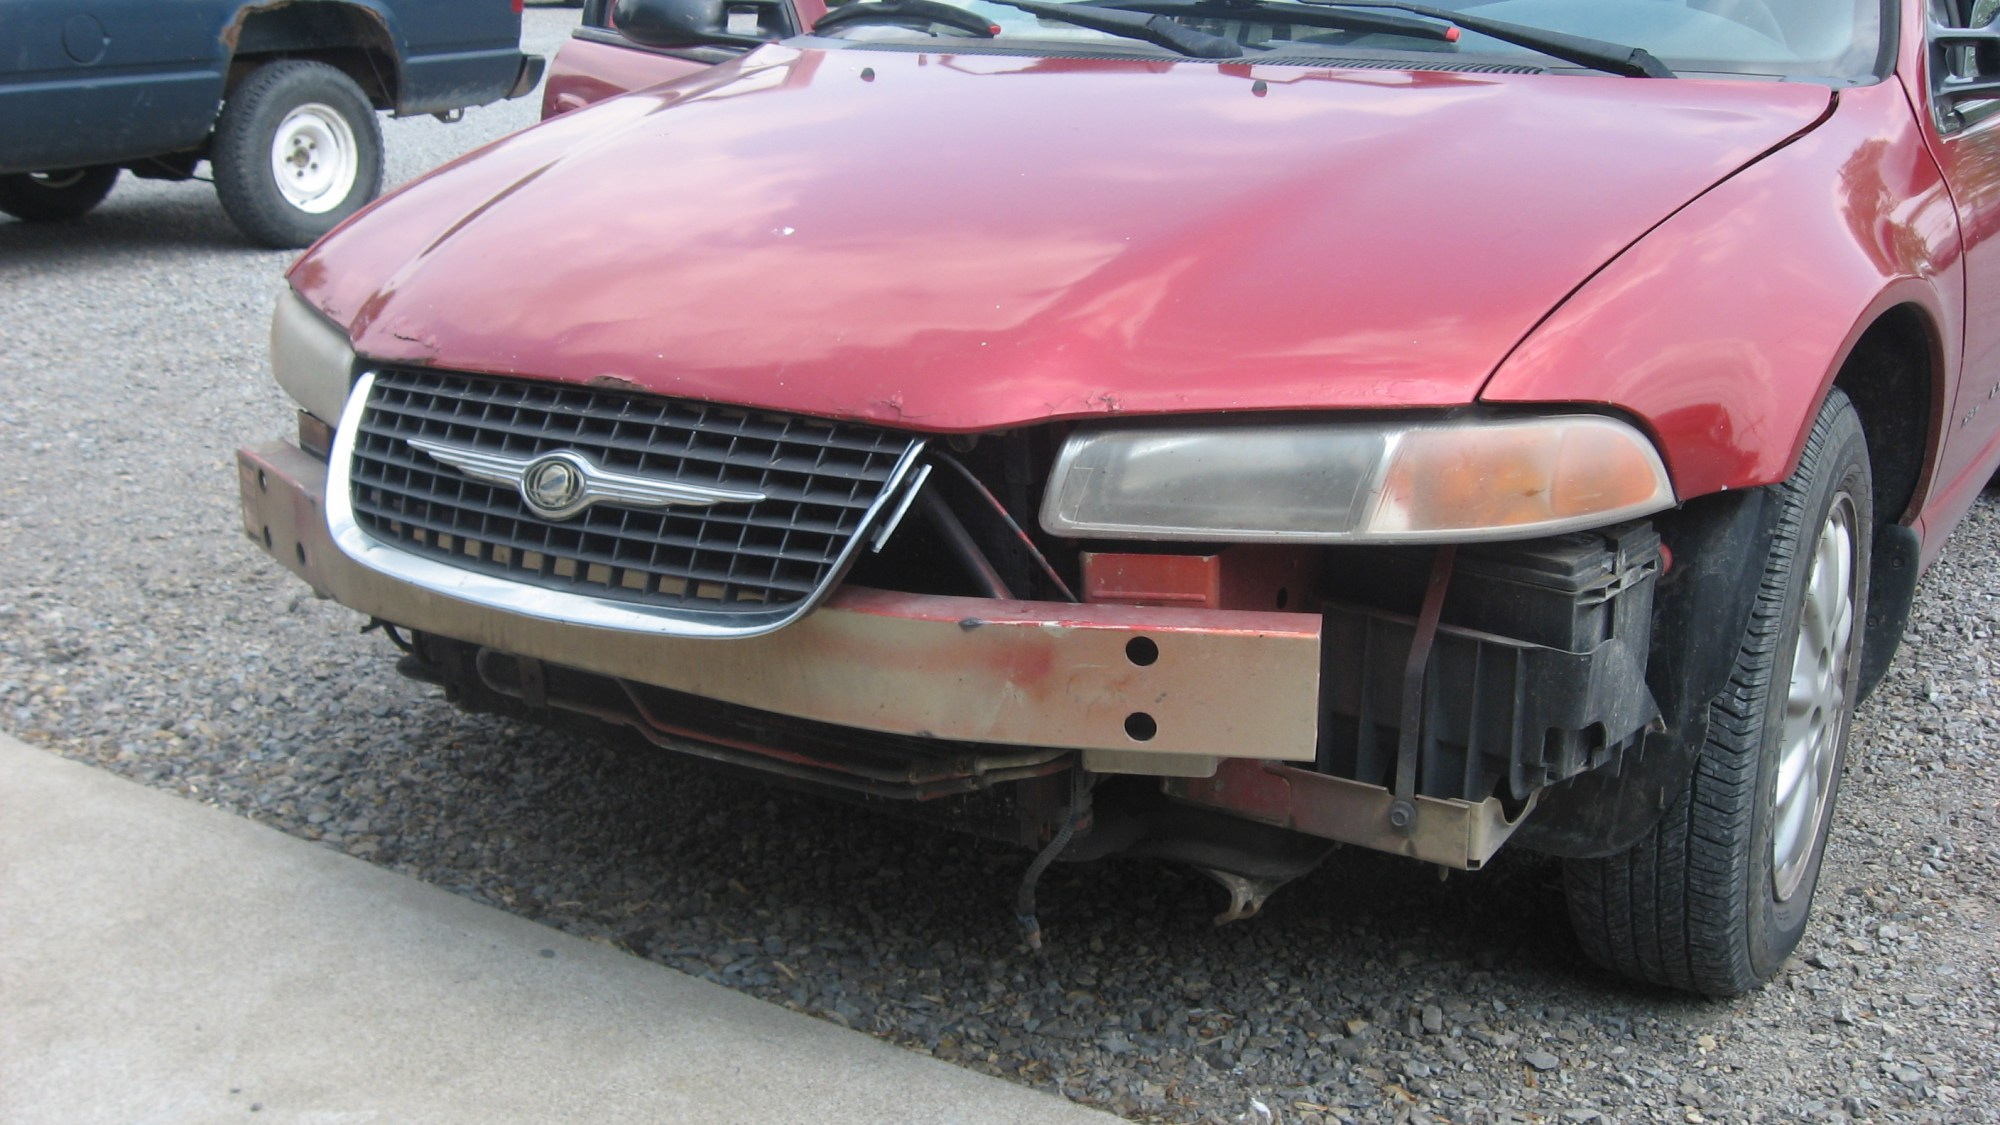 hight resolution of a car s bumper usually made from aluminium steel plastic or rubber is a protective shield mounted at both the front and back end of the car